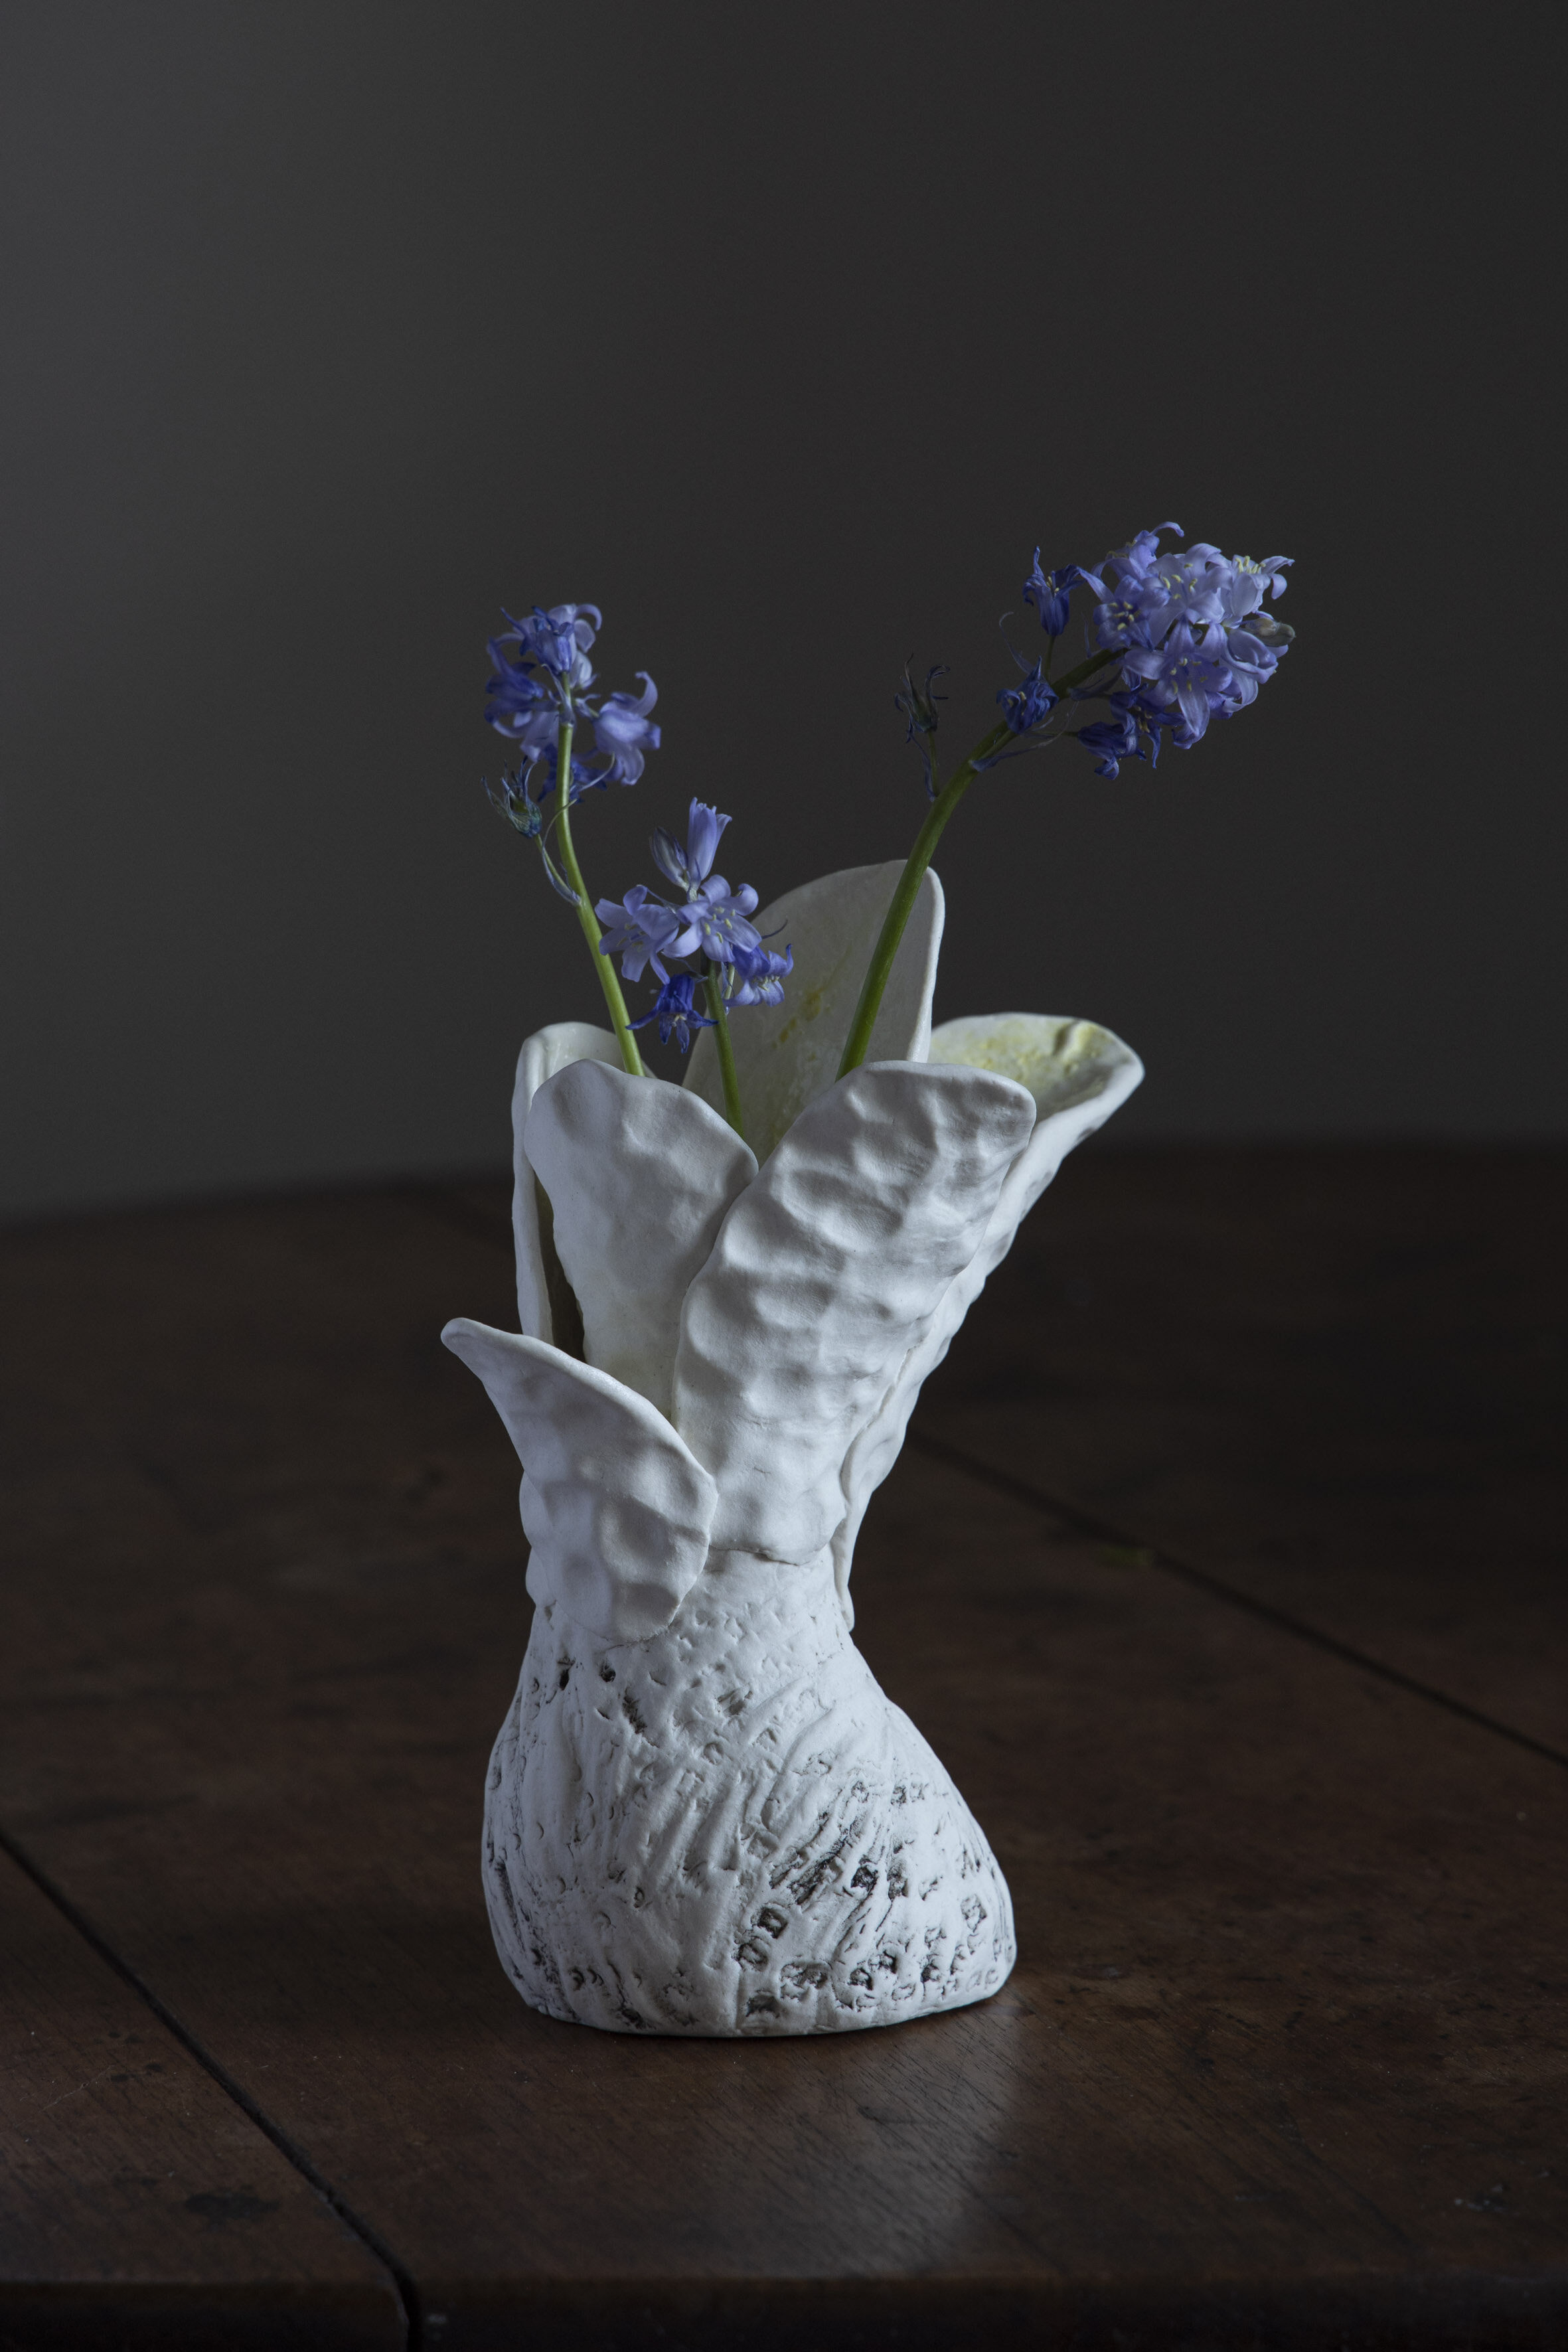 Robyn Phelan.Conversation with blackwattle with bluebells